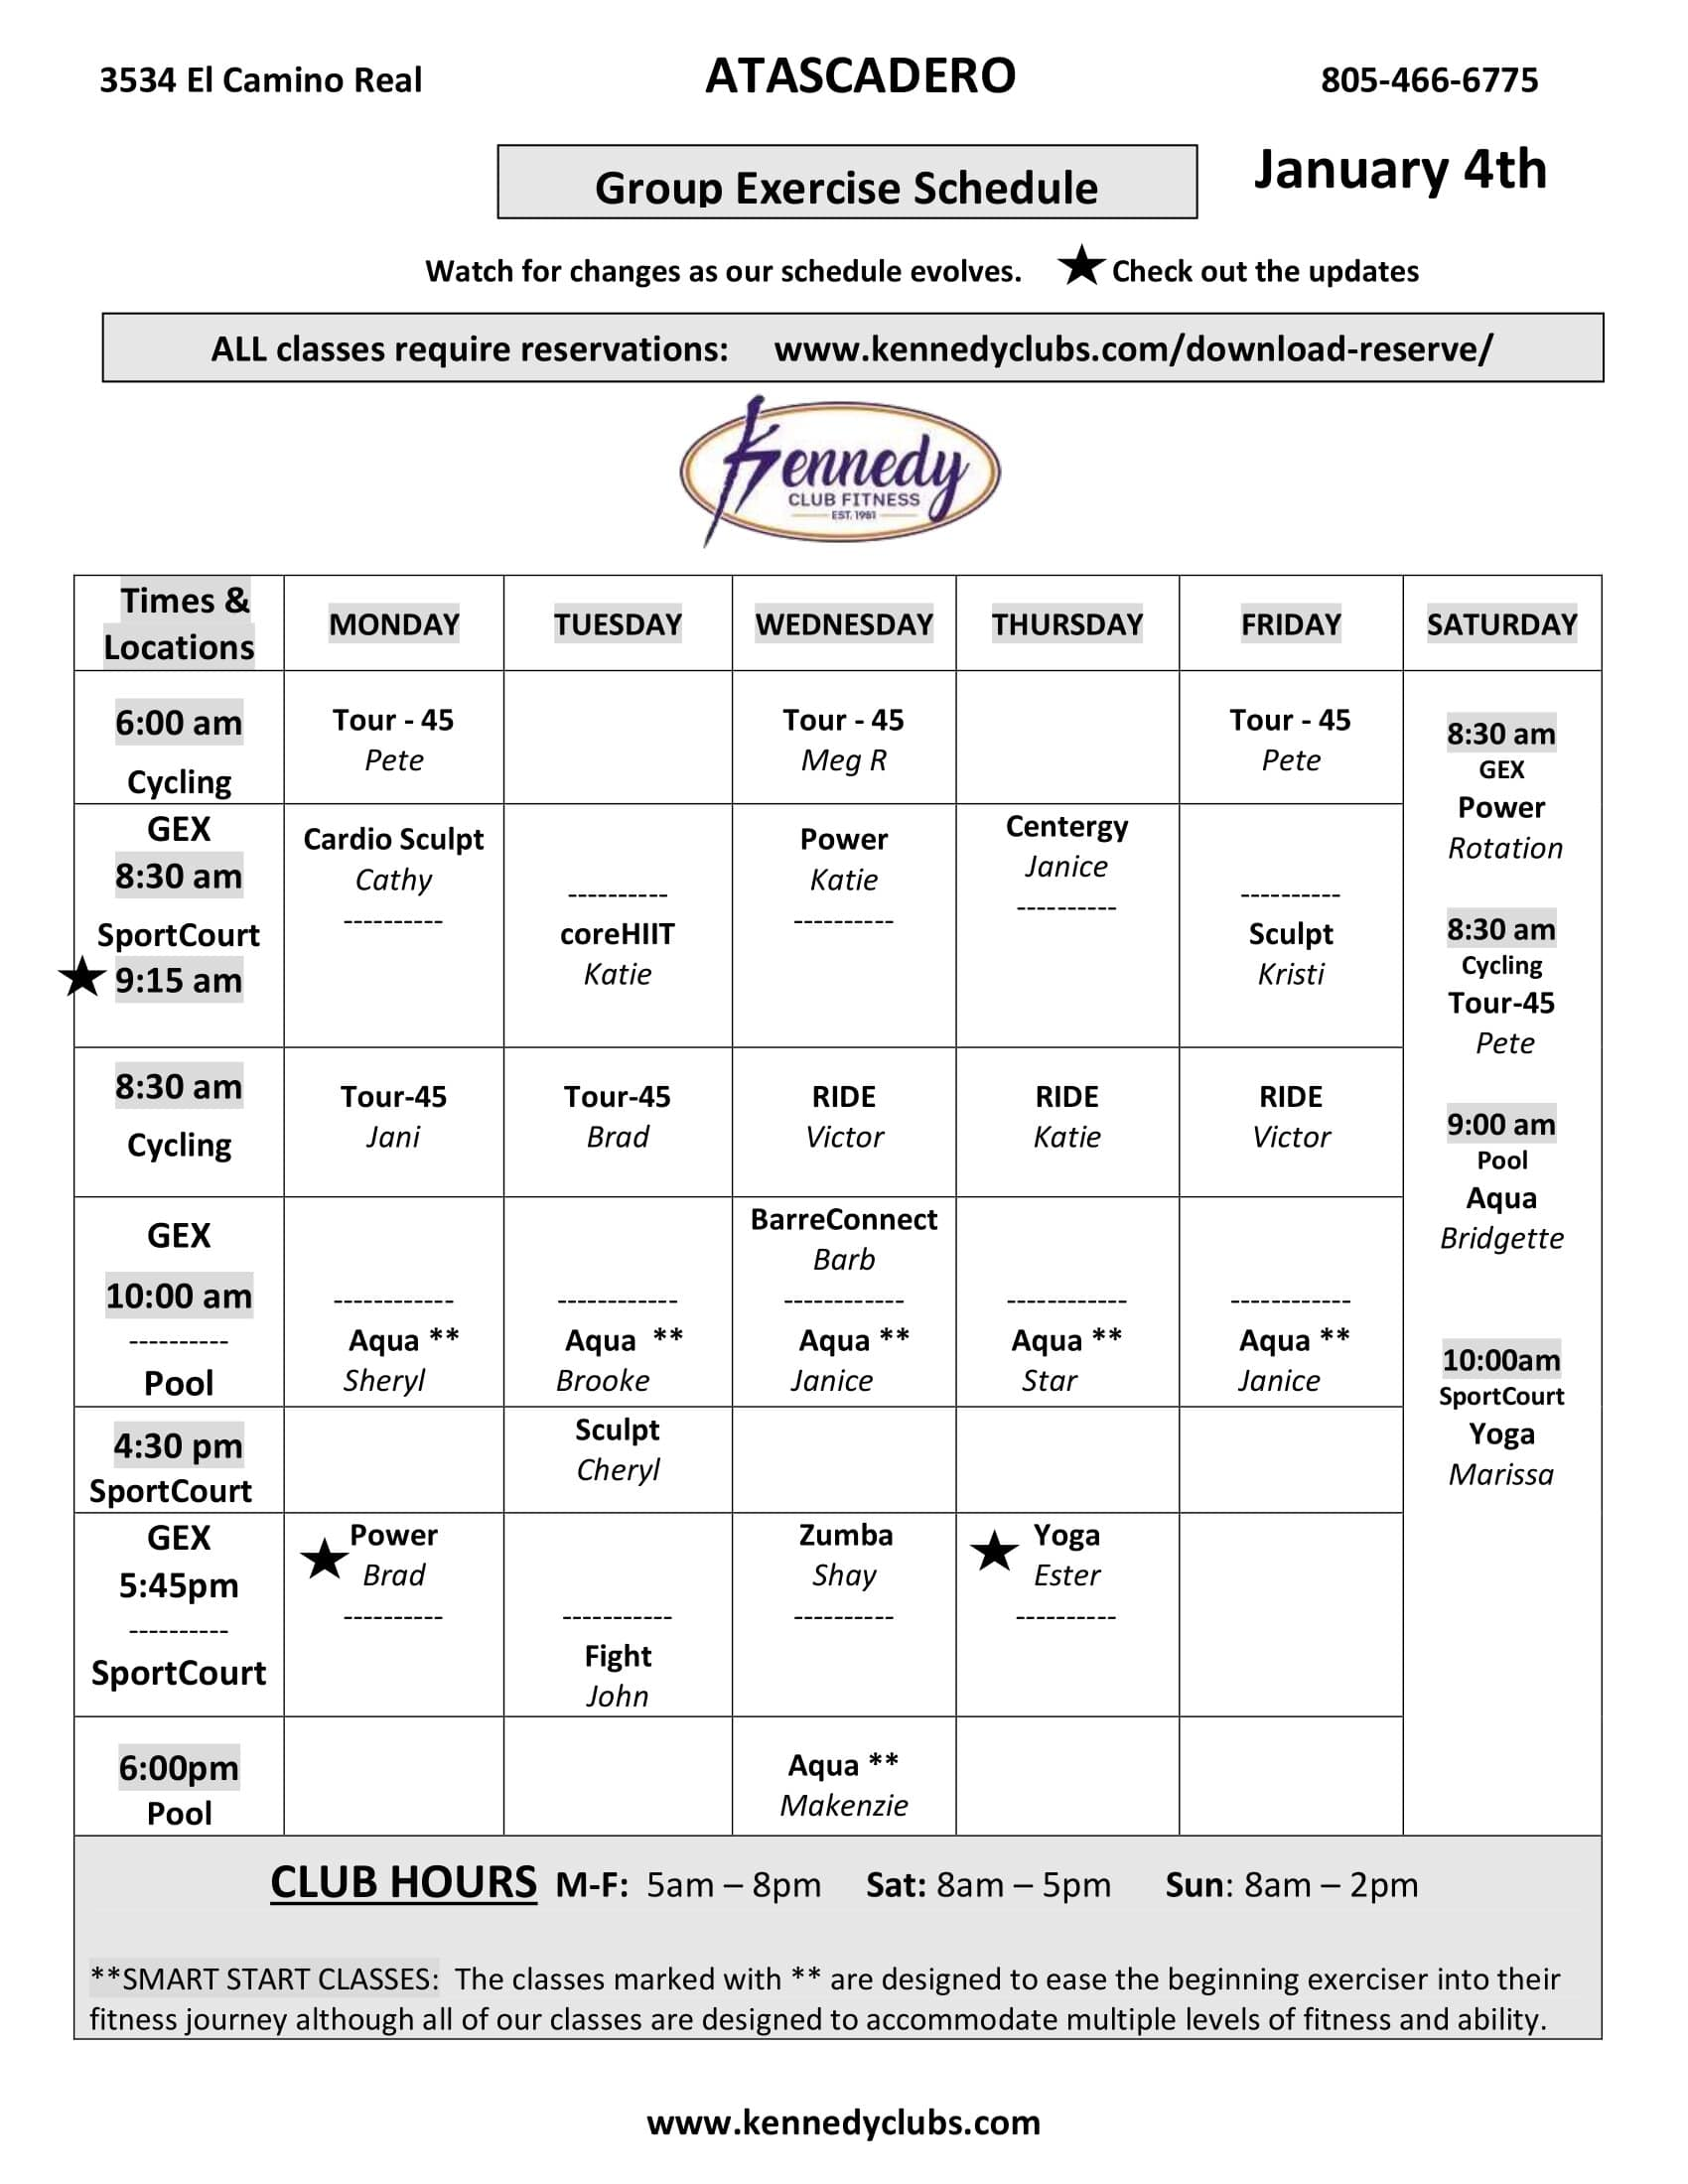 Kennedy Club Fitness Atascadero Group Exercise Schedule 01 04 2021